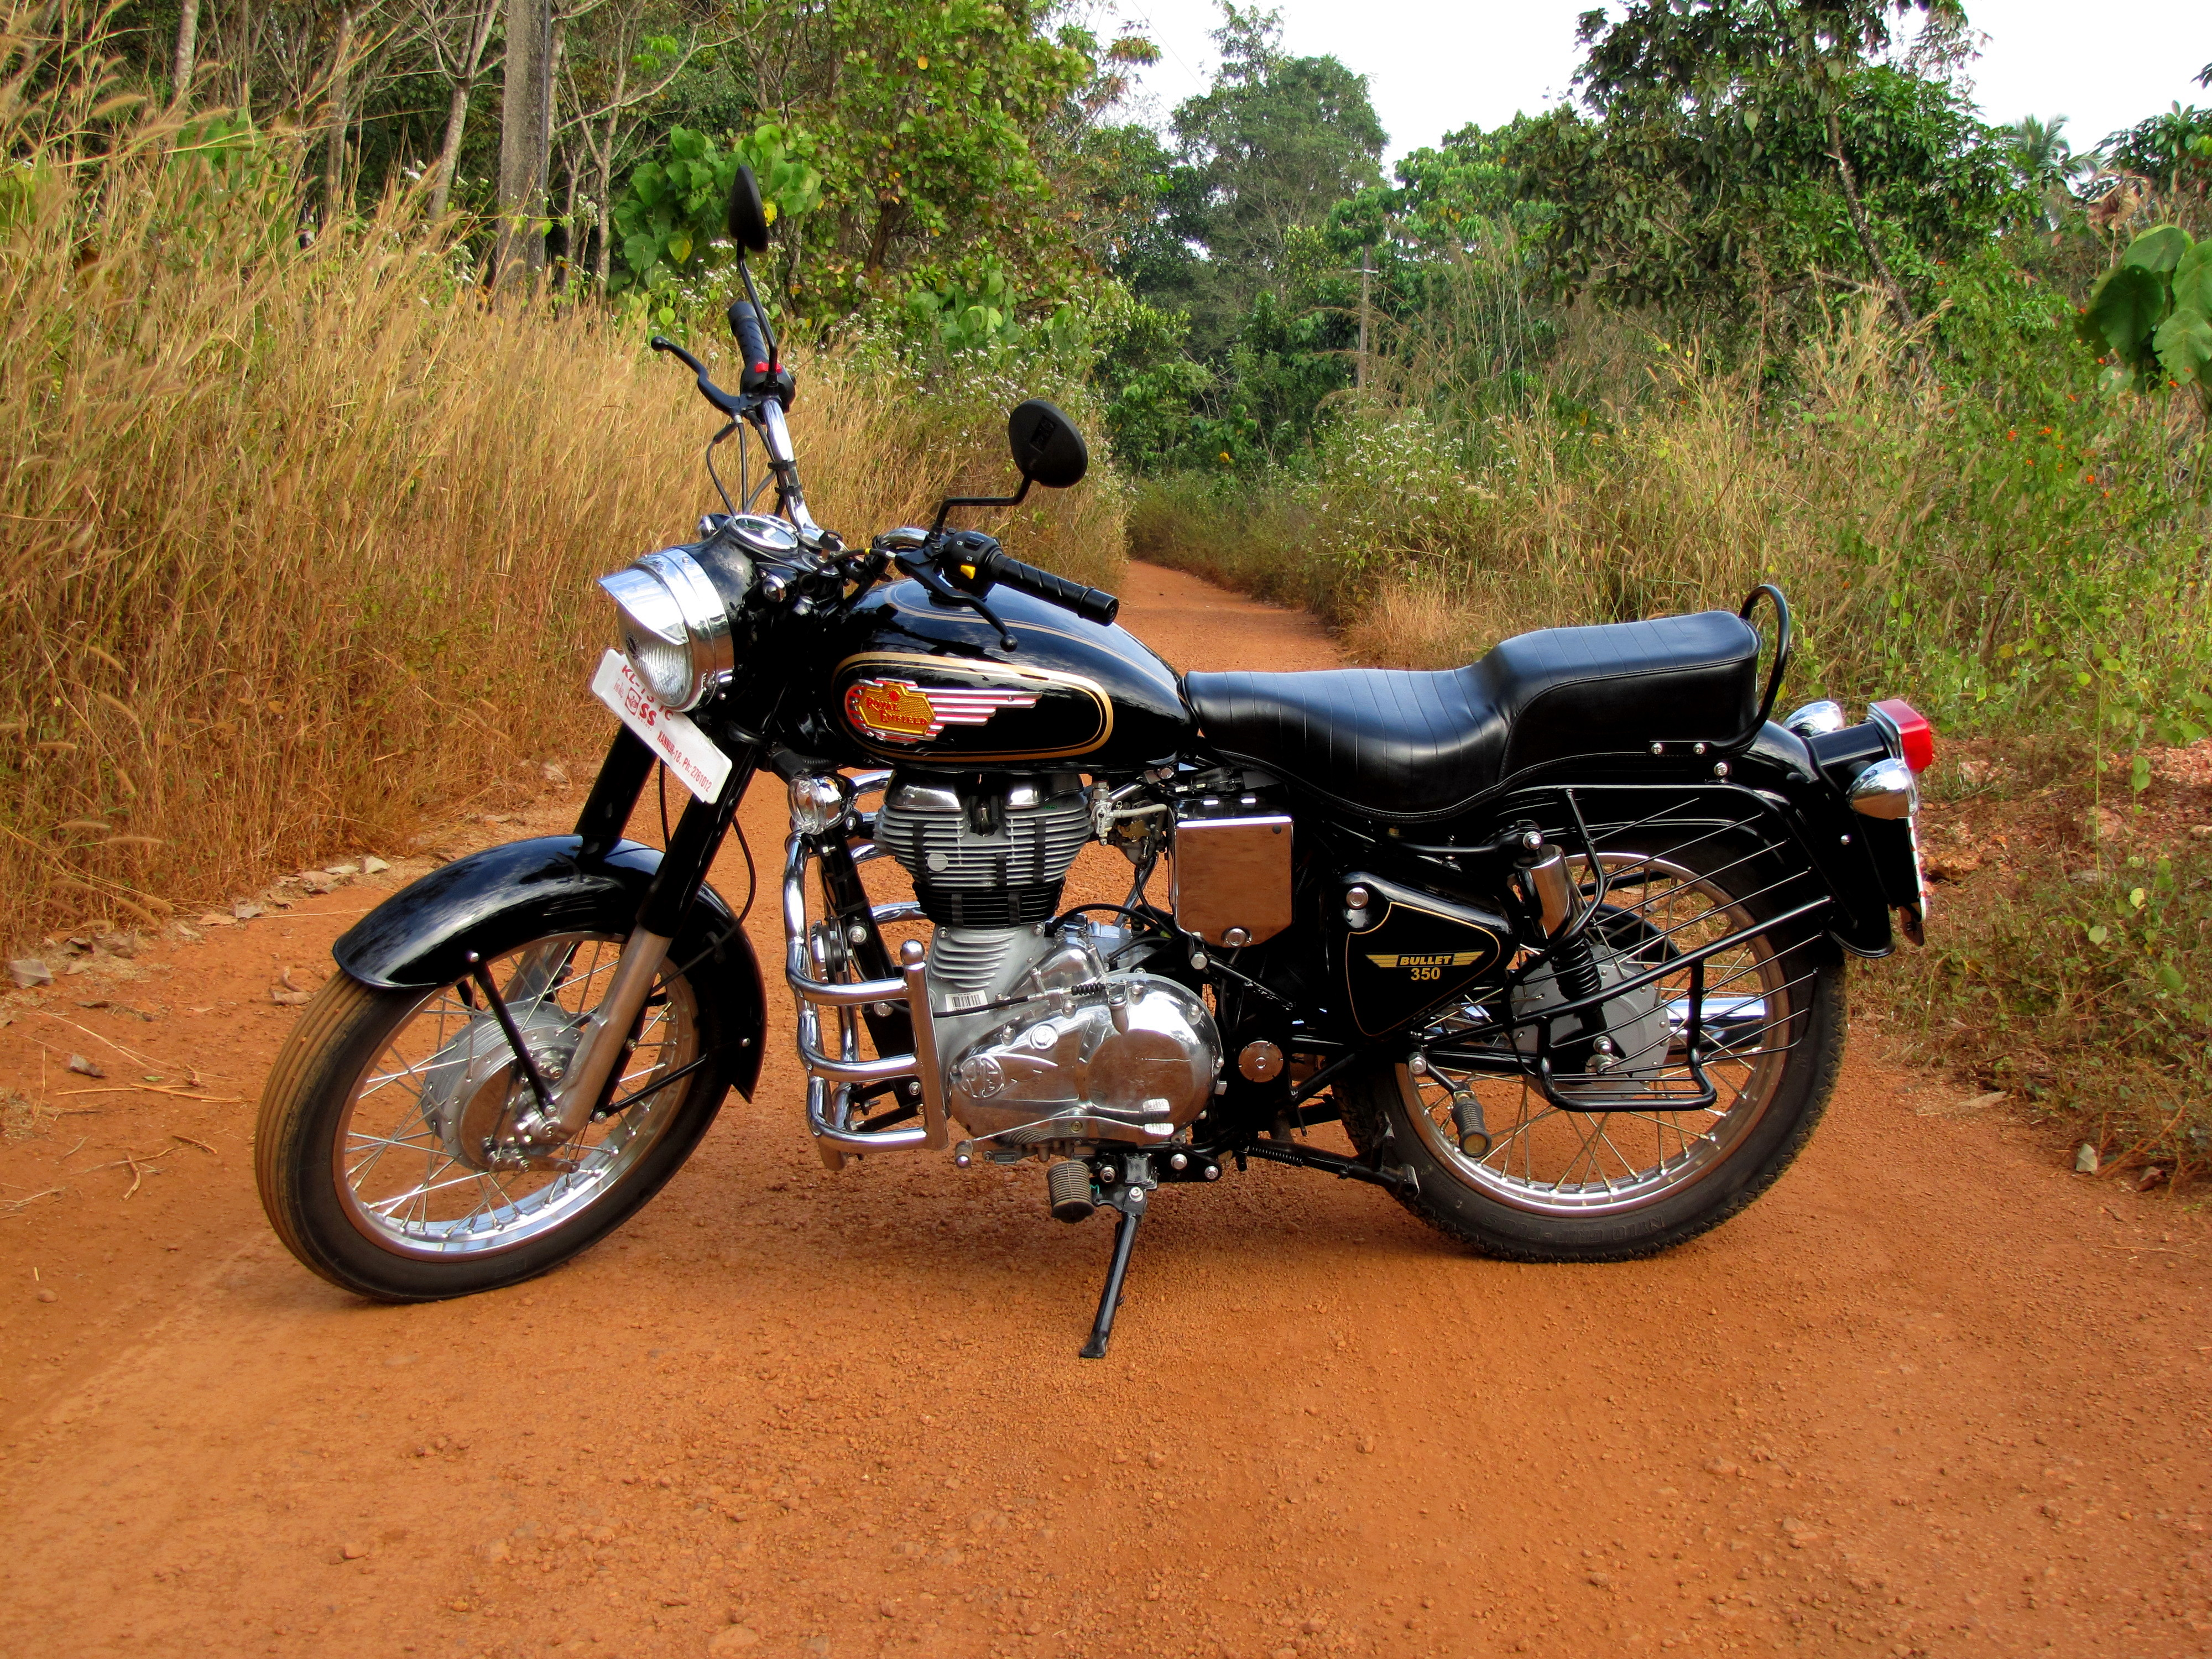 Royal Enfield Bullet 350 Army 2001 images #123101